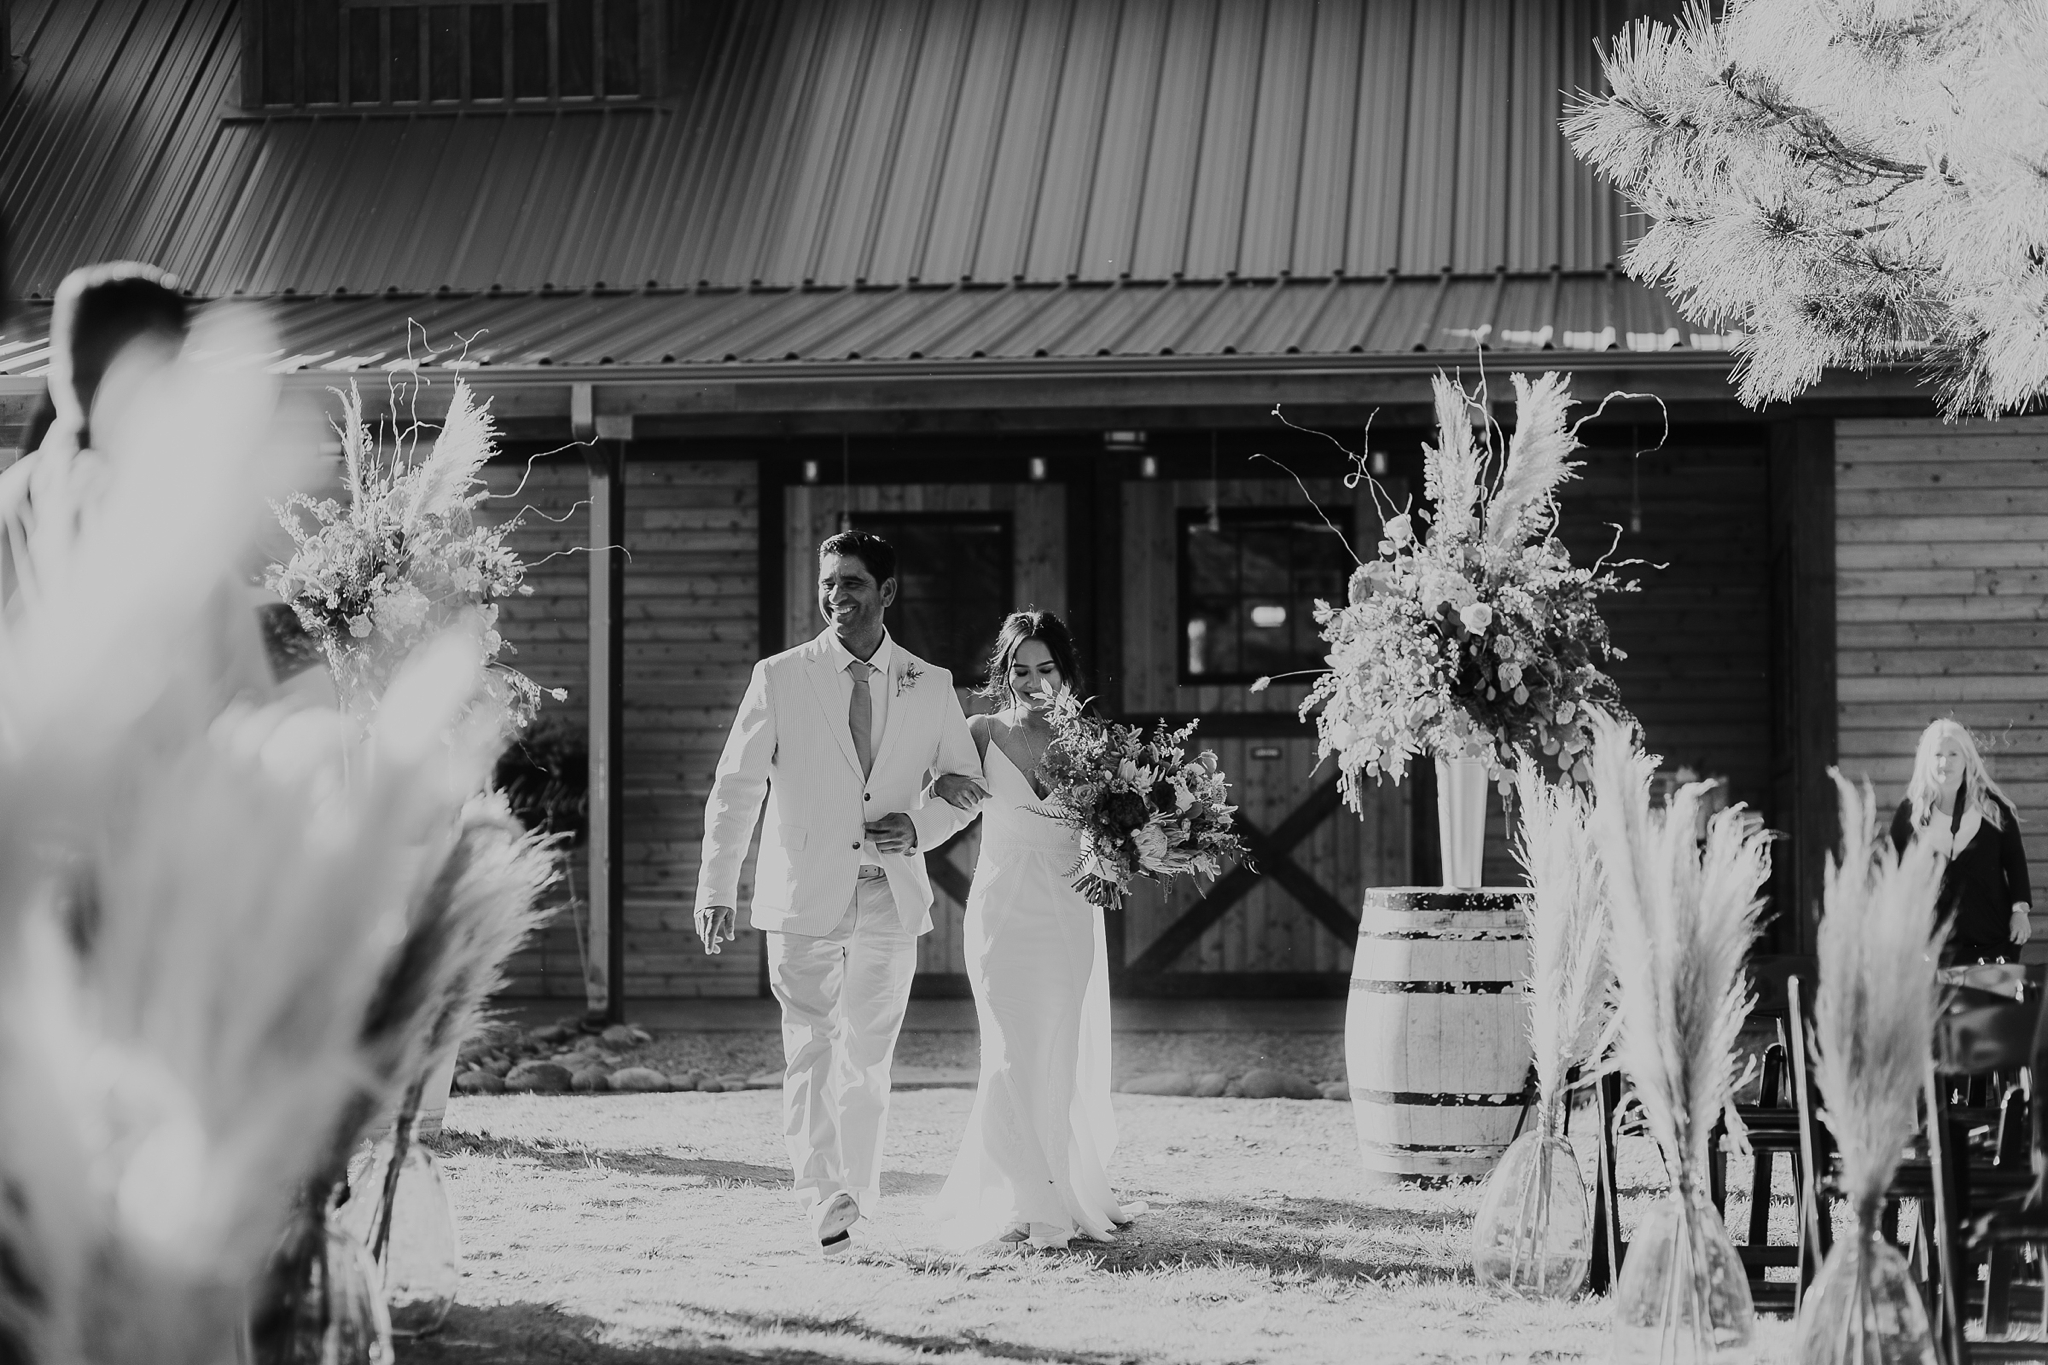 Alicia+lucia+photography+-+albuquerque+wedding+photographer+-+santa+fe+wedding+photography+-+new+mexico+wedding+photographer+-+new+mexico+wedding+-+new+mexico+wedding+-+barn+wedding+-+enchanted+vine+barn+wedding+-+ruidoso+wedding_0094.jpg